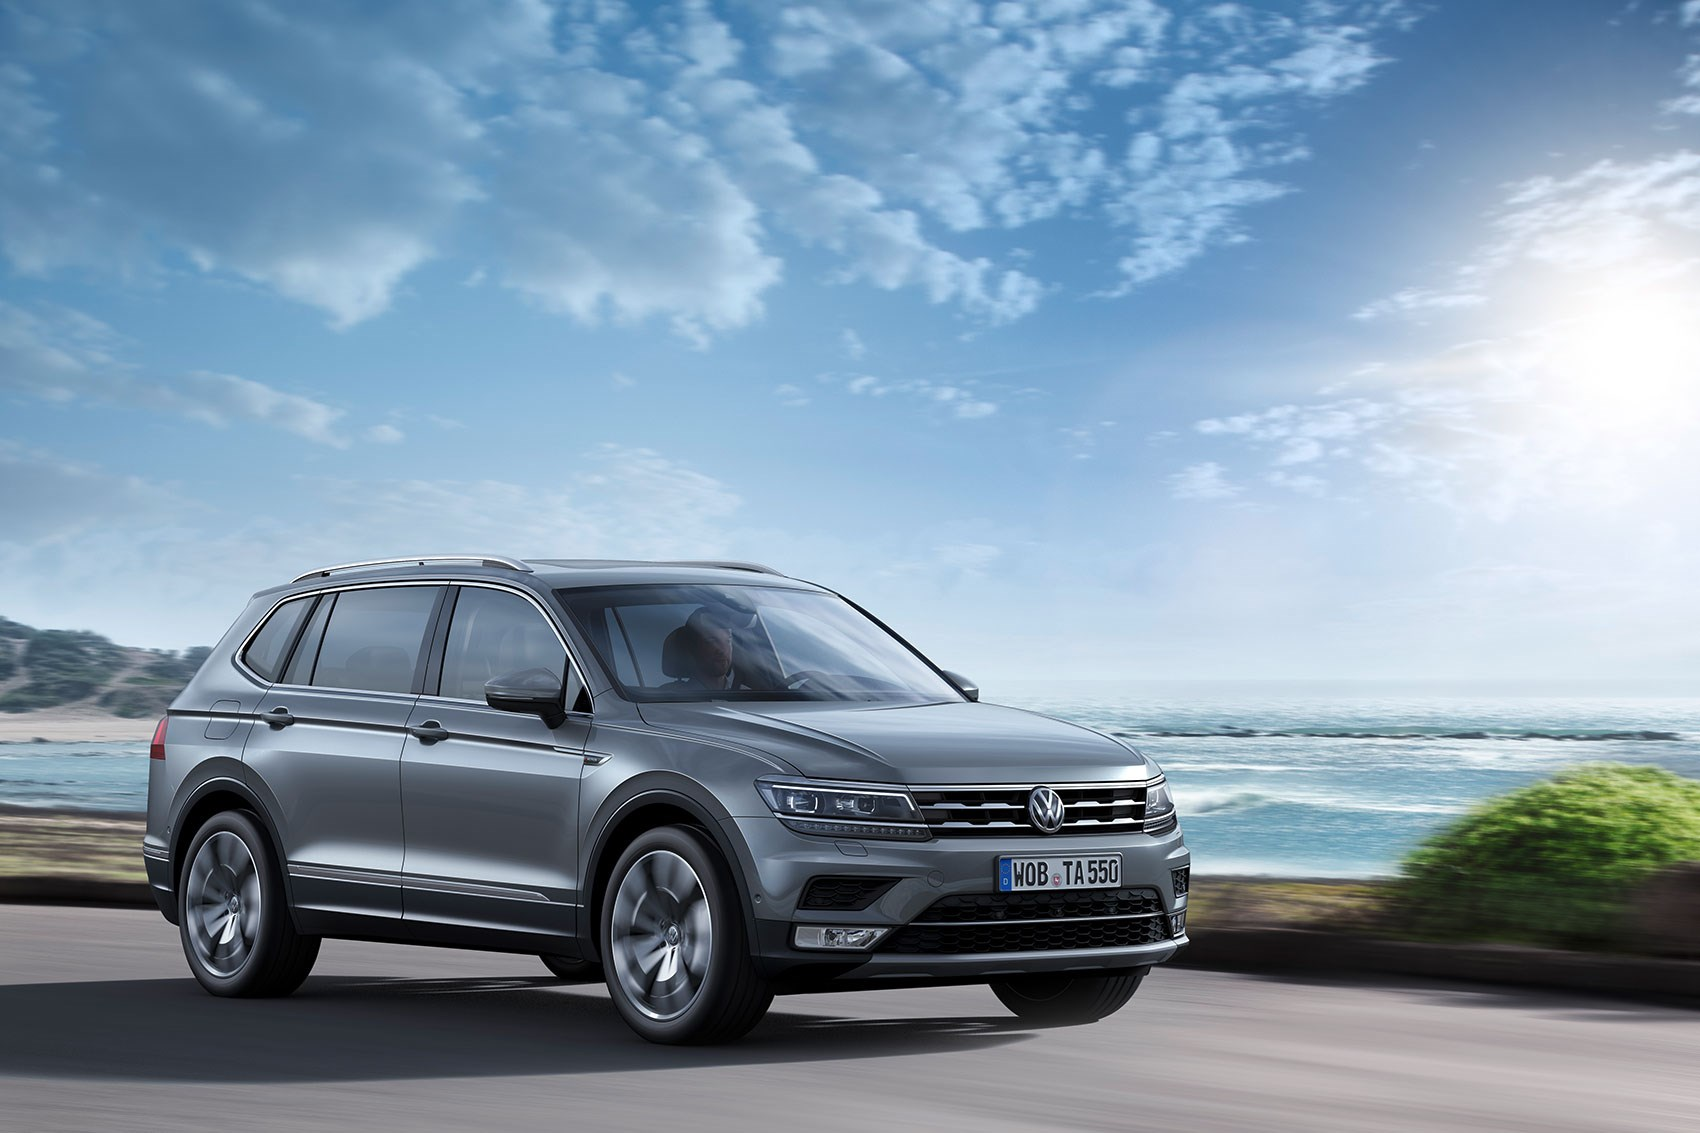 volkswagen tiguan grows to become allspace by car magazine. Black Bedroom Furniture Sets. Home Design Ideas